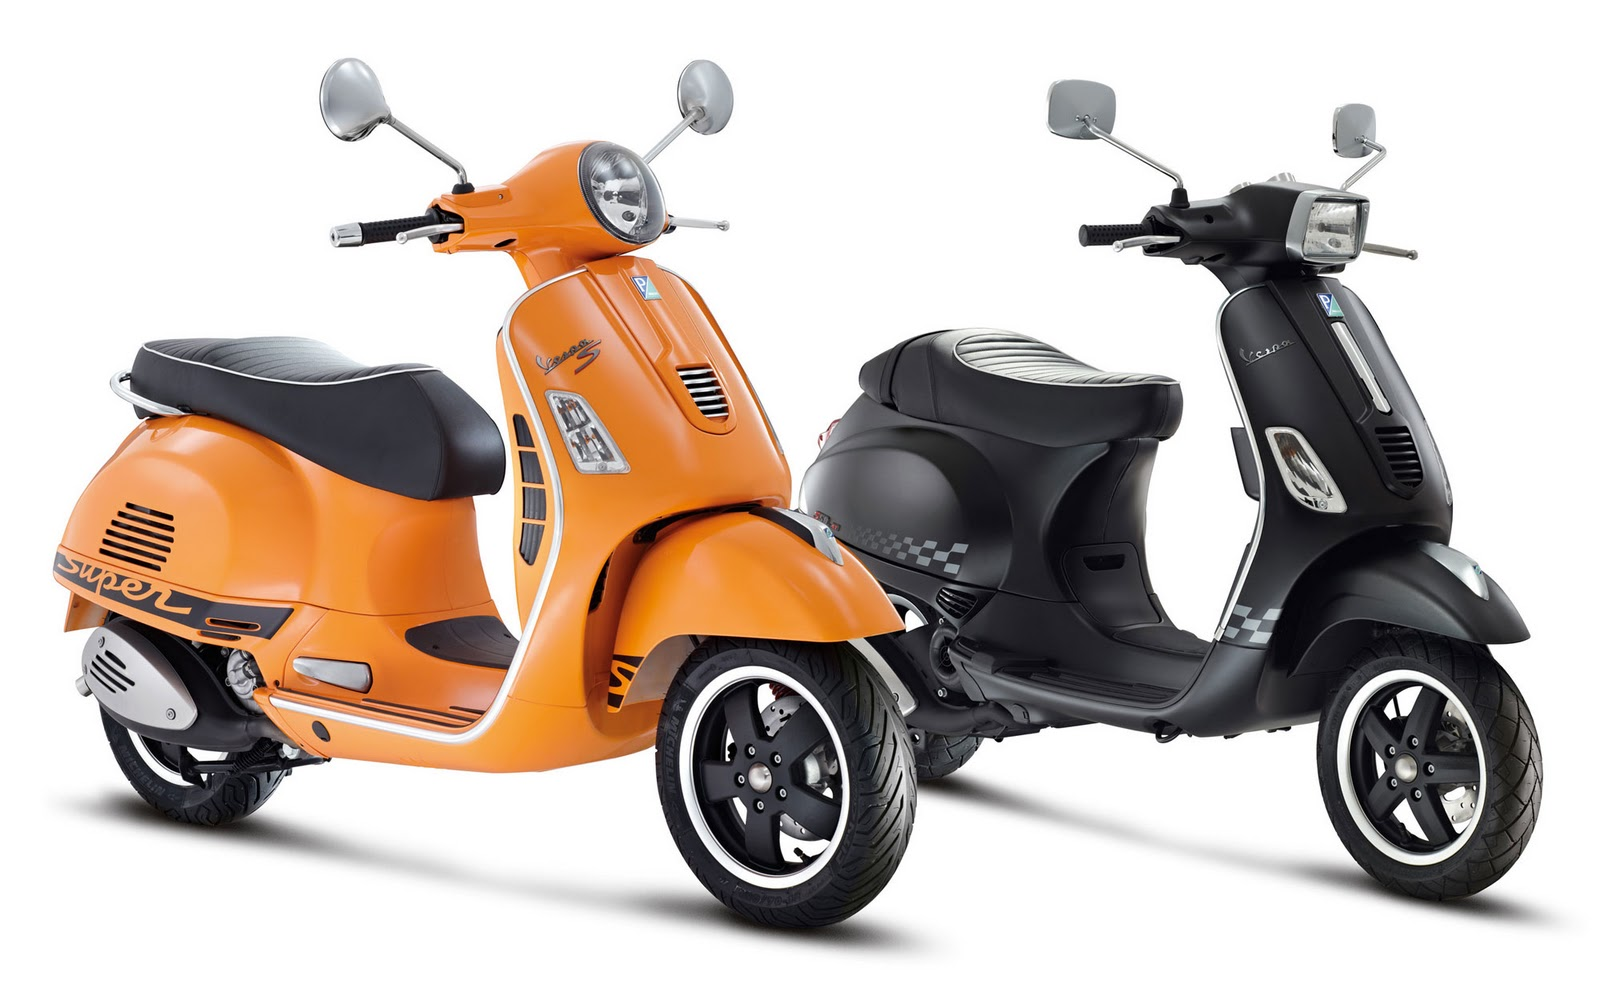 vespa pictures vespa gts 300 super sport 2012. Black Bedroom Furniture Sets. Home Design Ideas